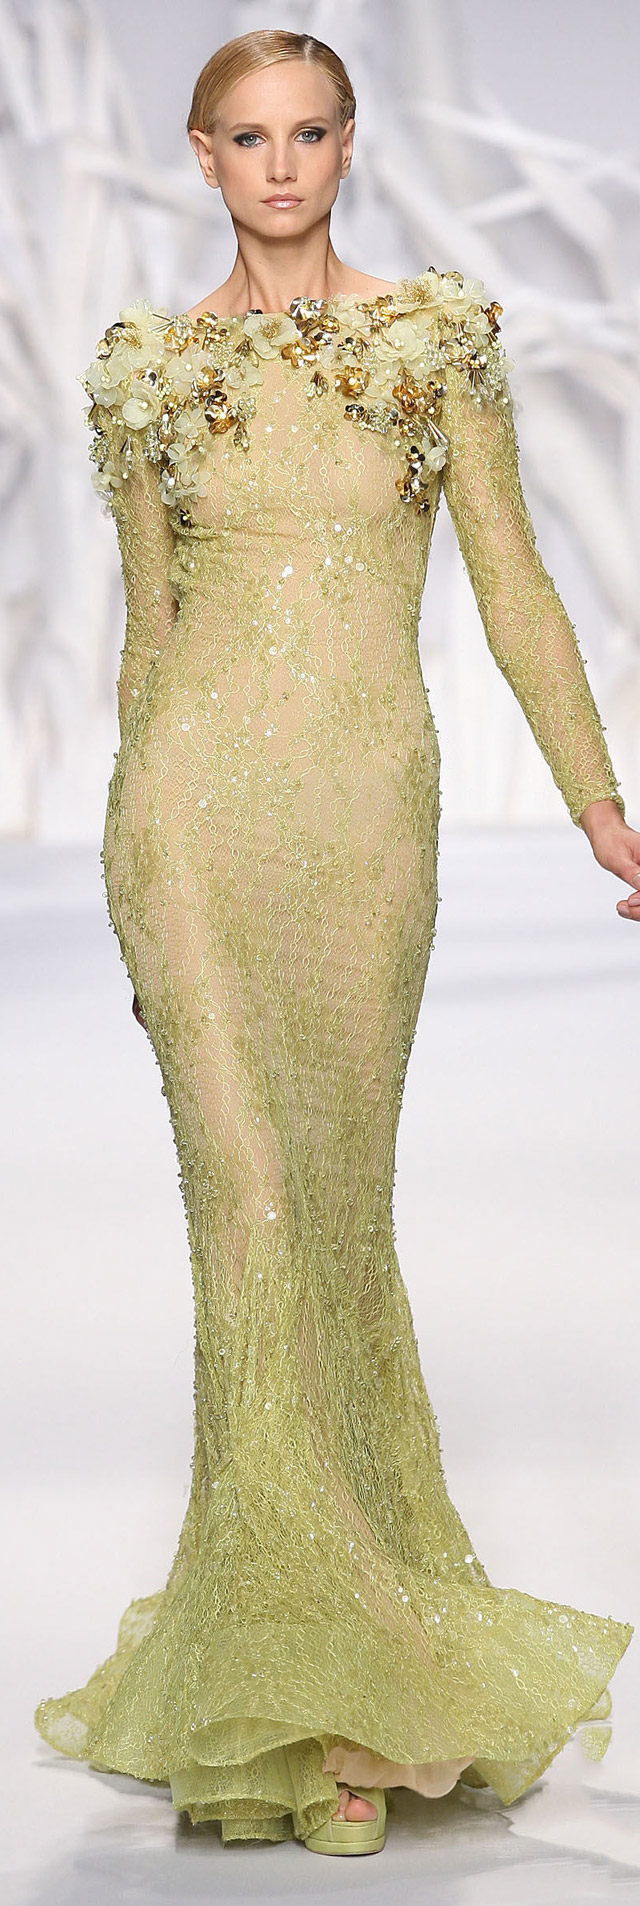 Abed Mahfouz Haute Couture Fall-Winter 2013-2014 (14)